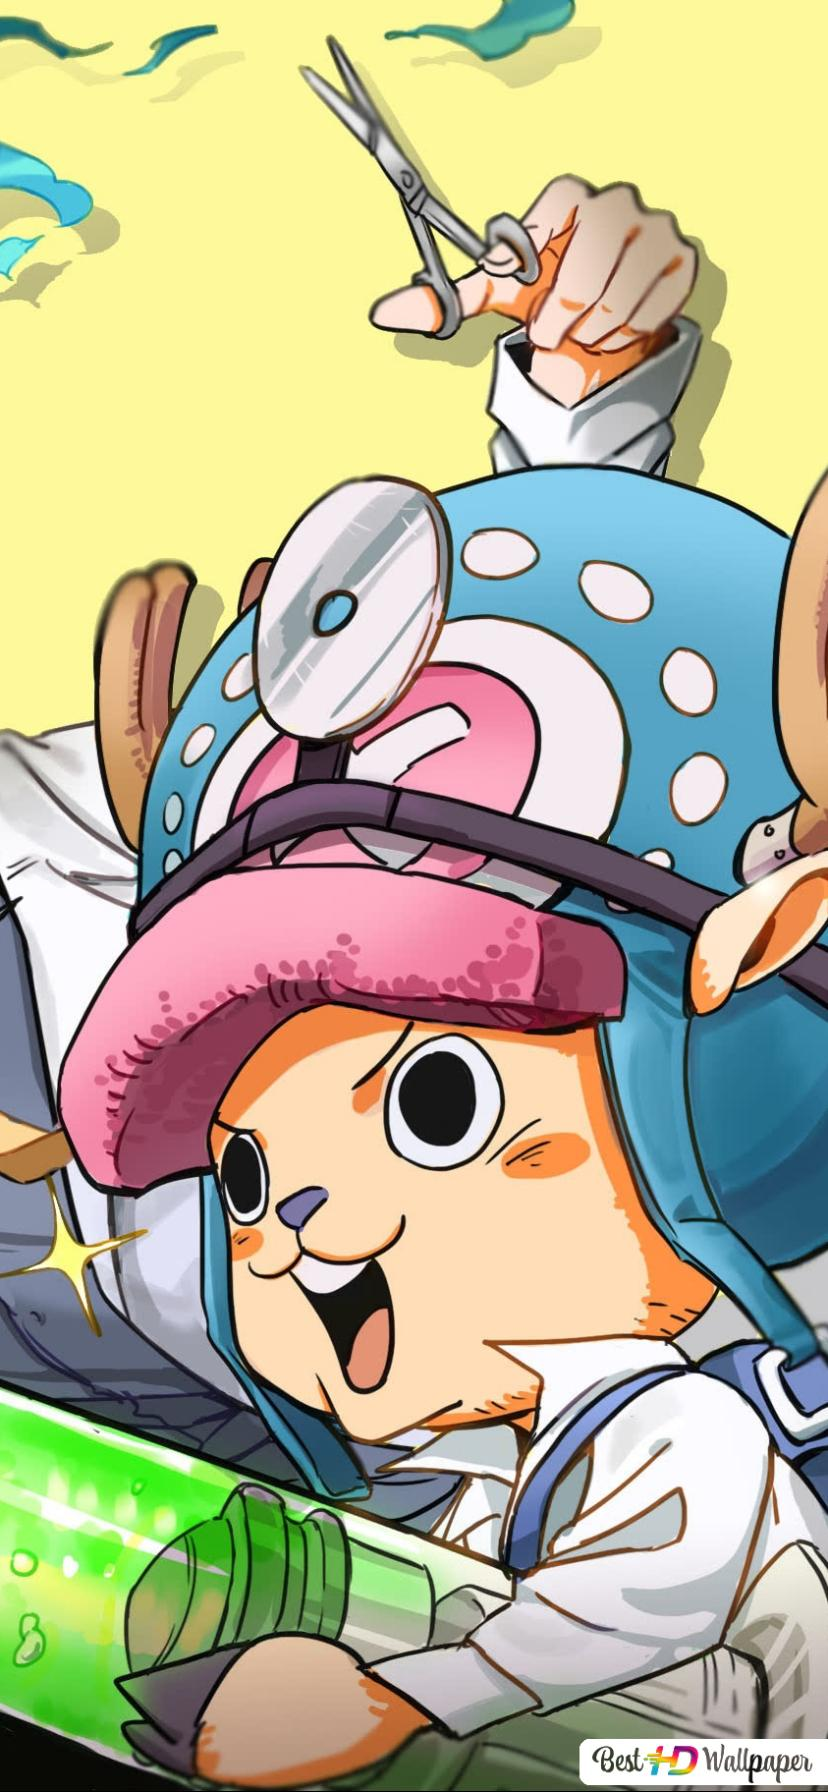 Iphone Home Screen Iphone Chopper One Piece Wallpaper Doraemon